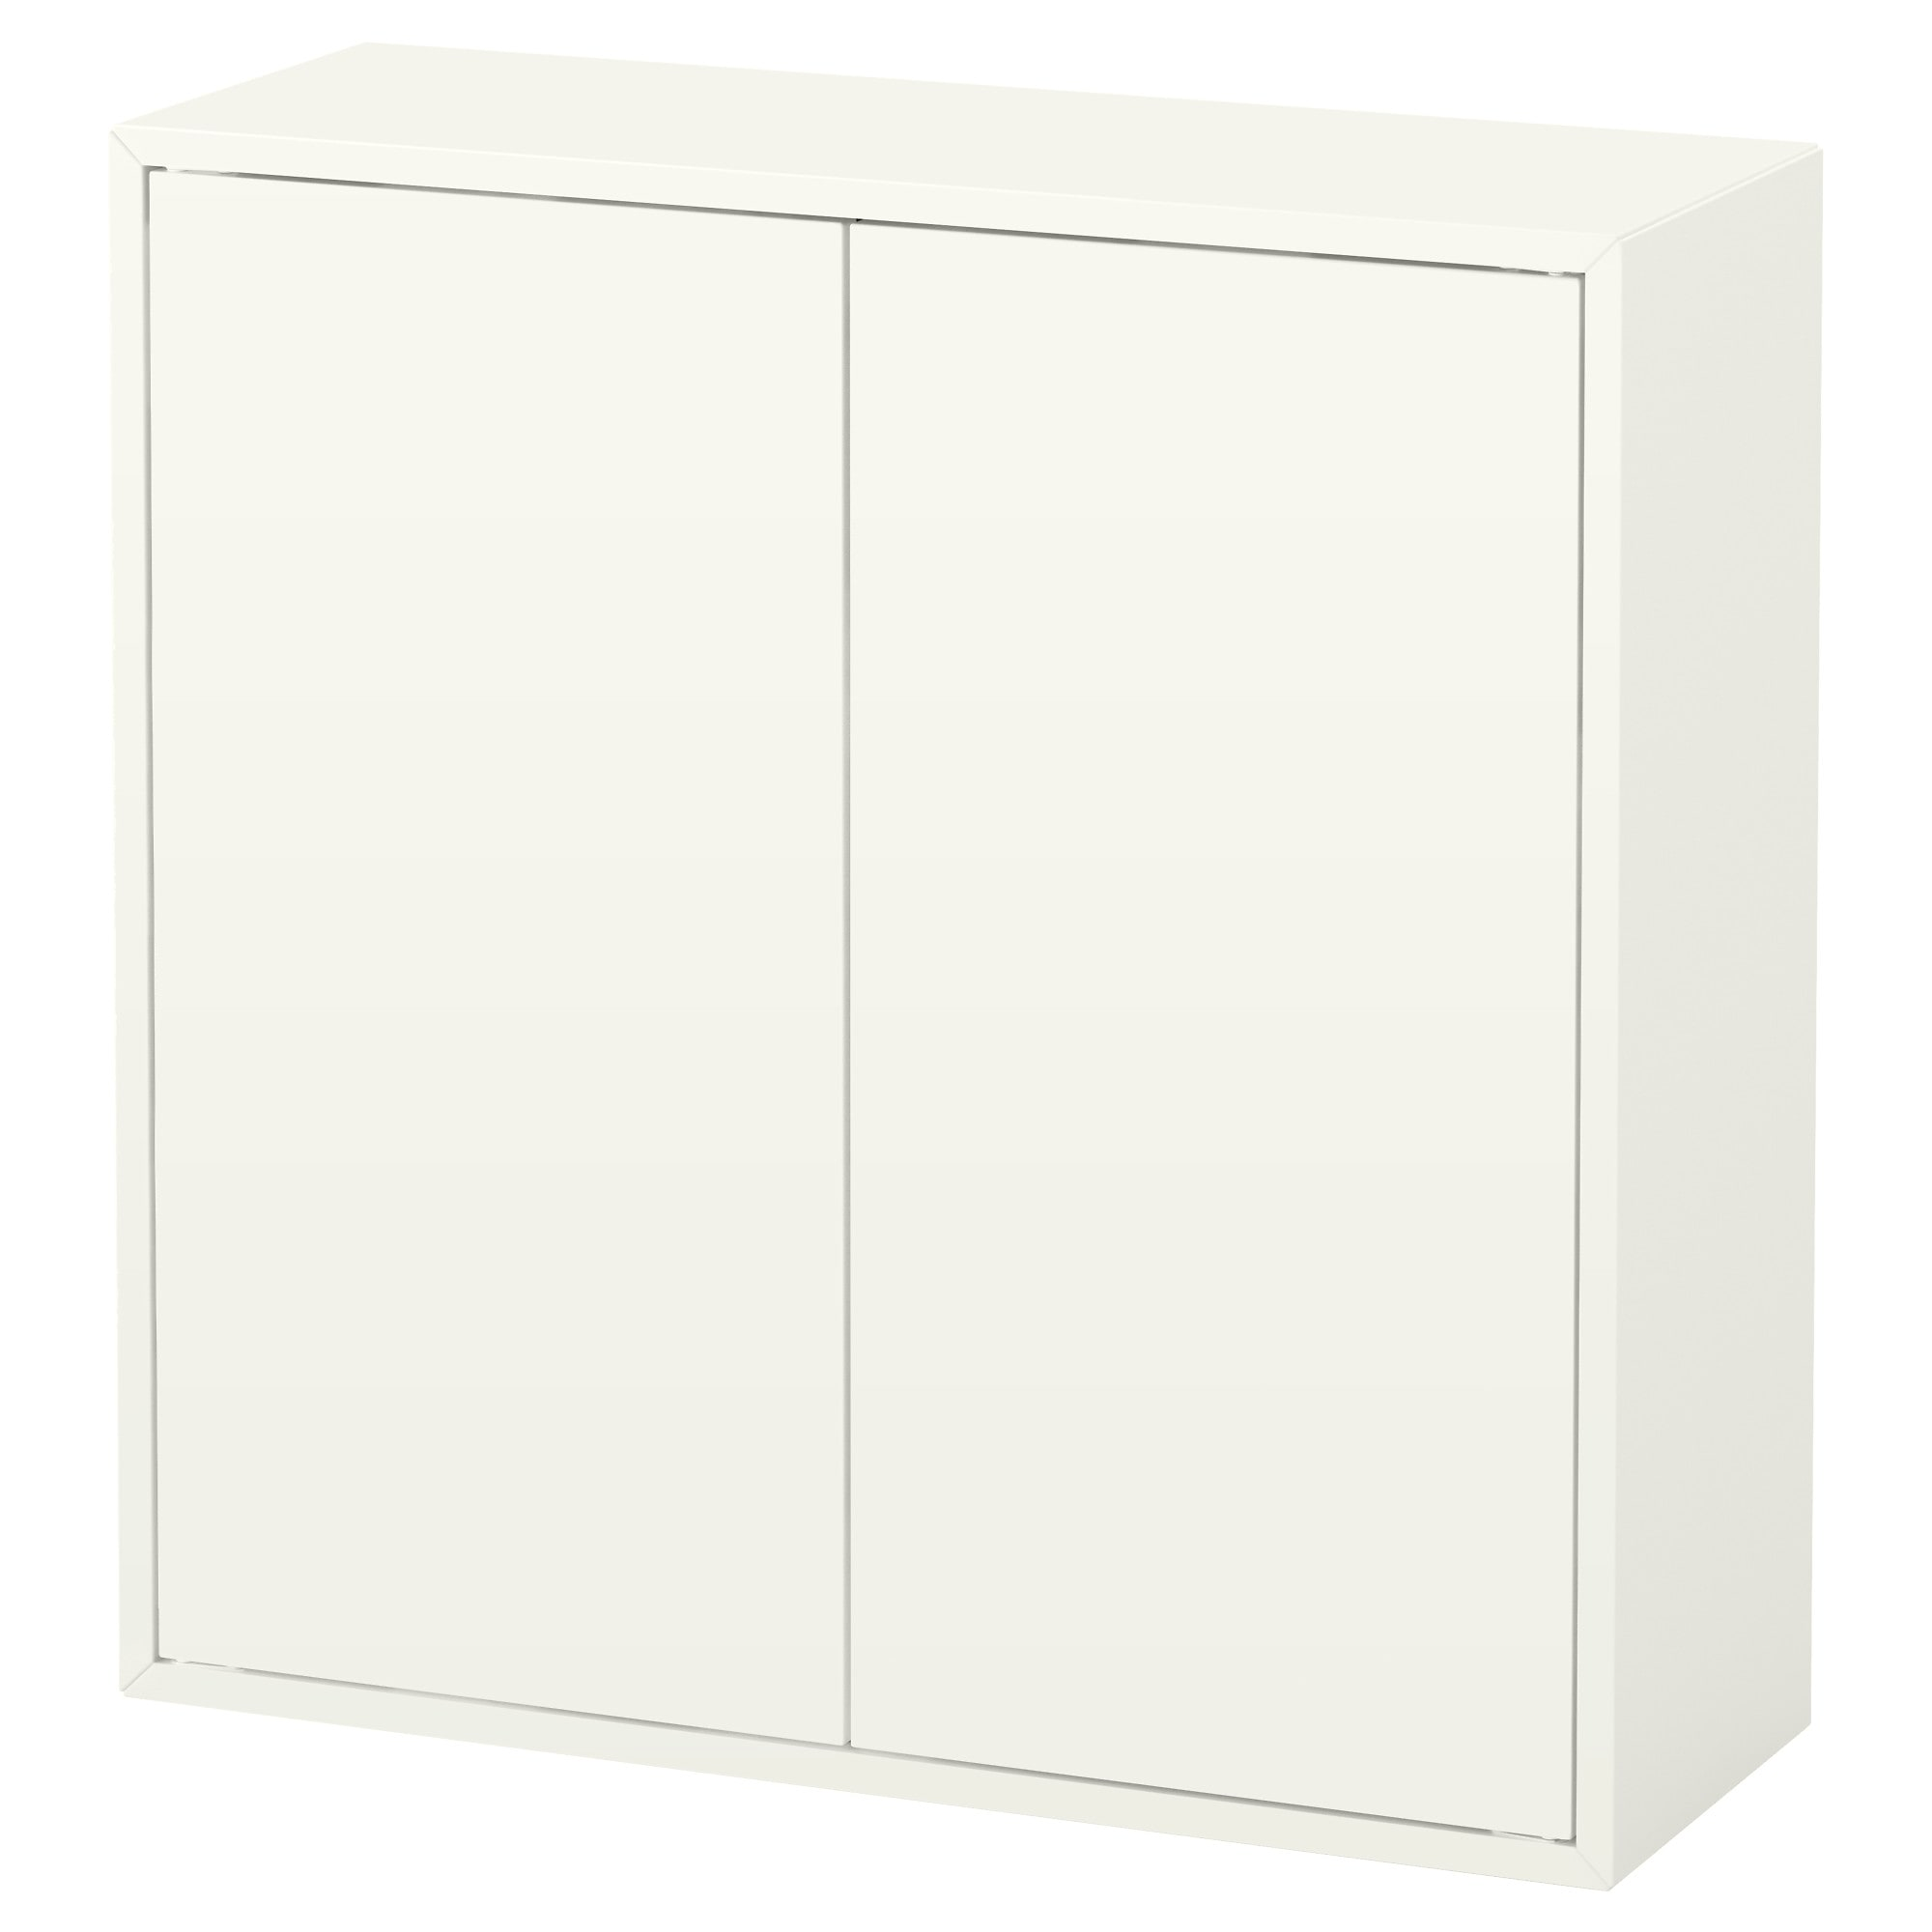 EKET Cabinet With 2 Doors And 2 Shelves, White Width: 27 1/2